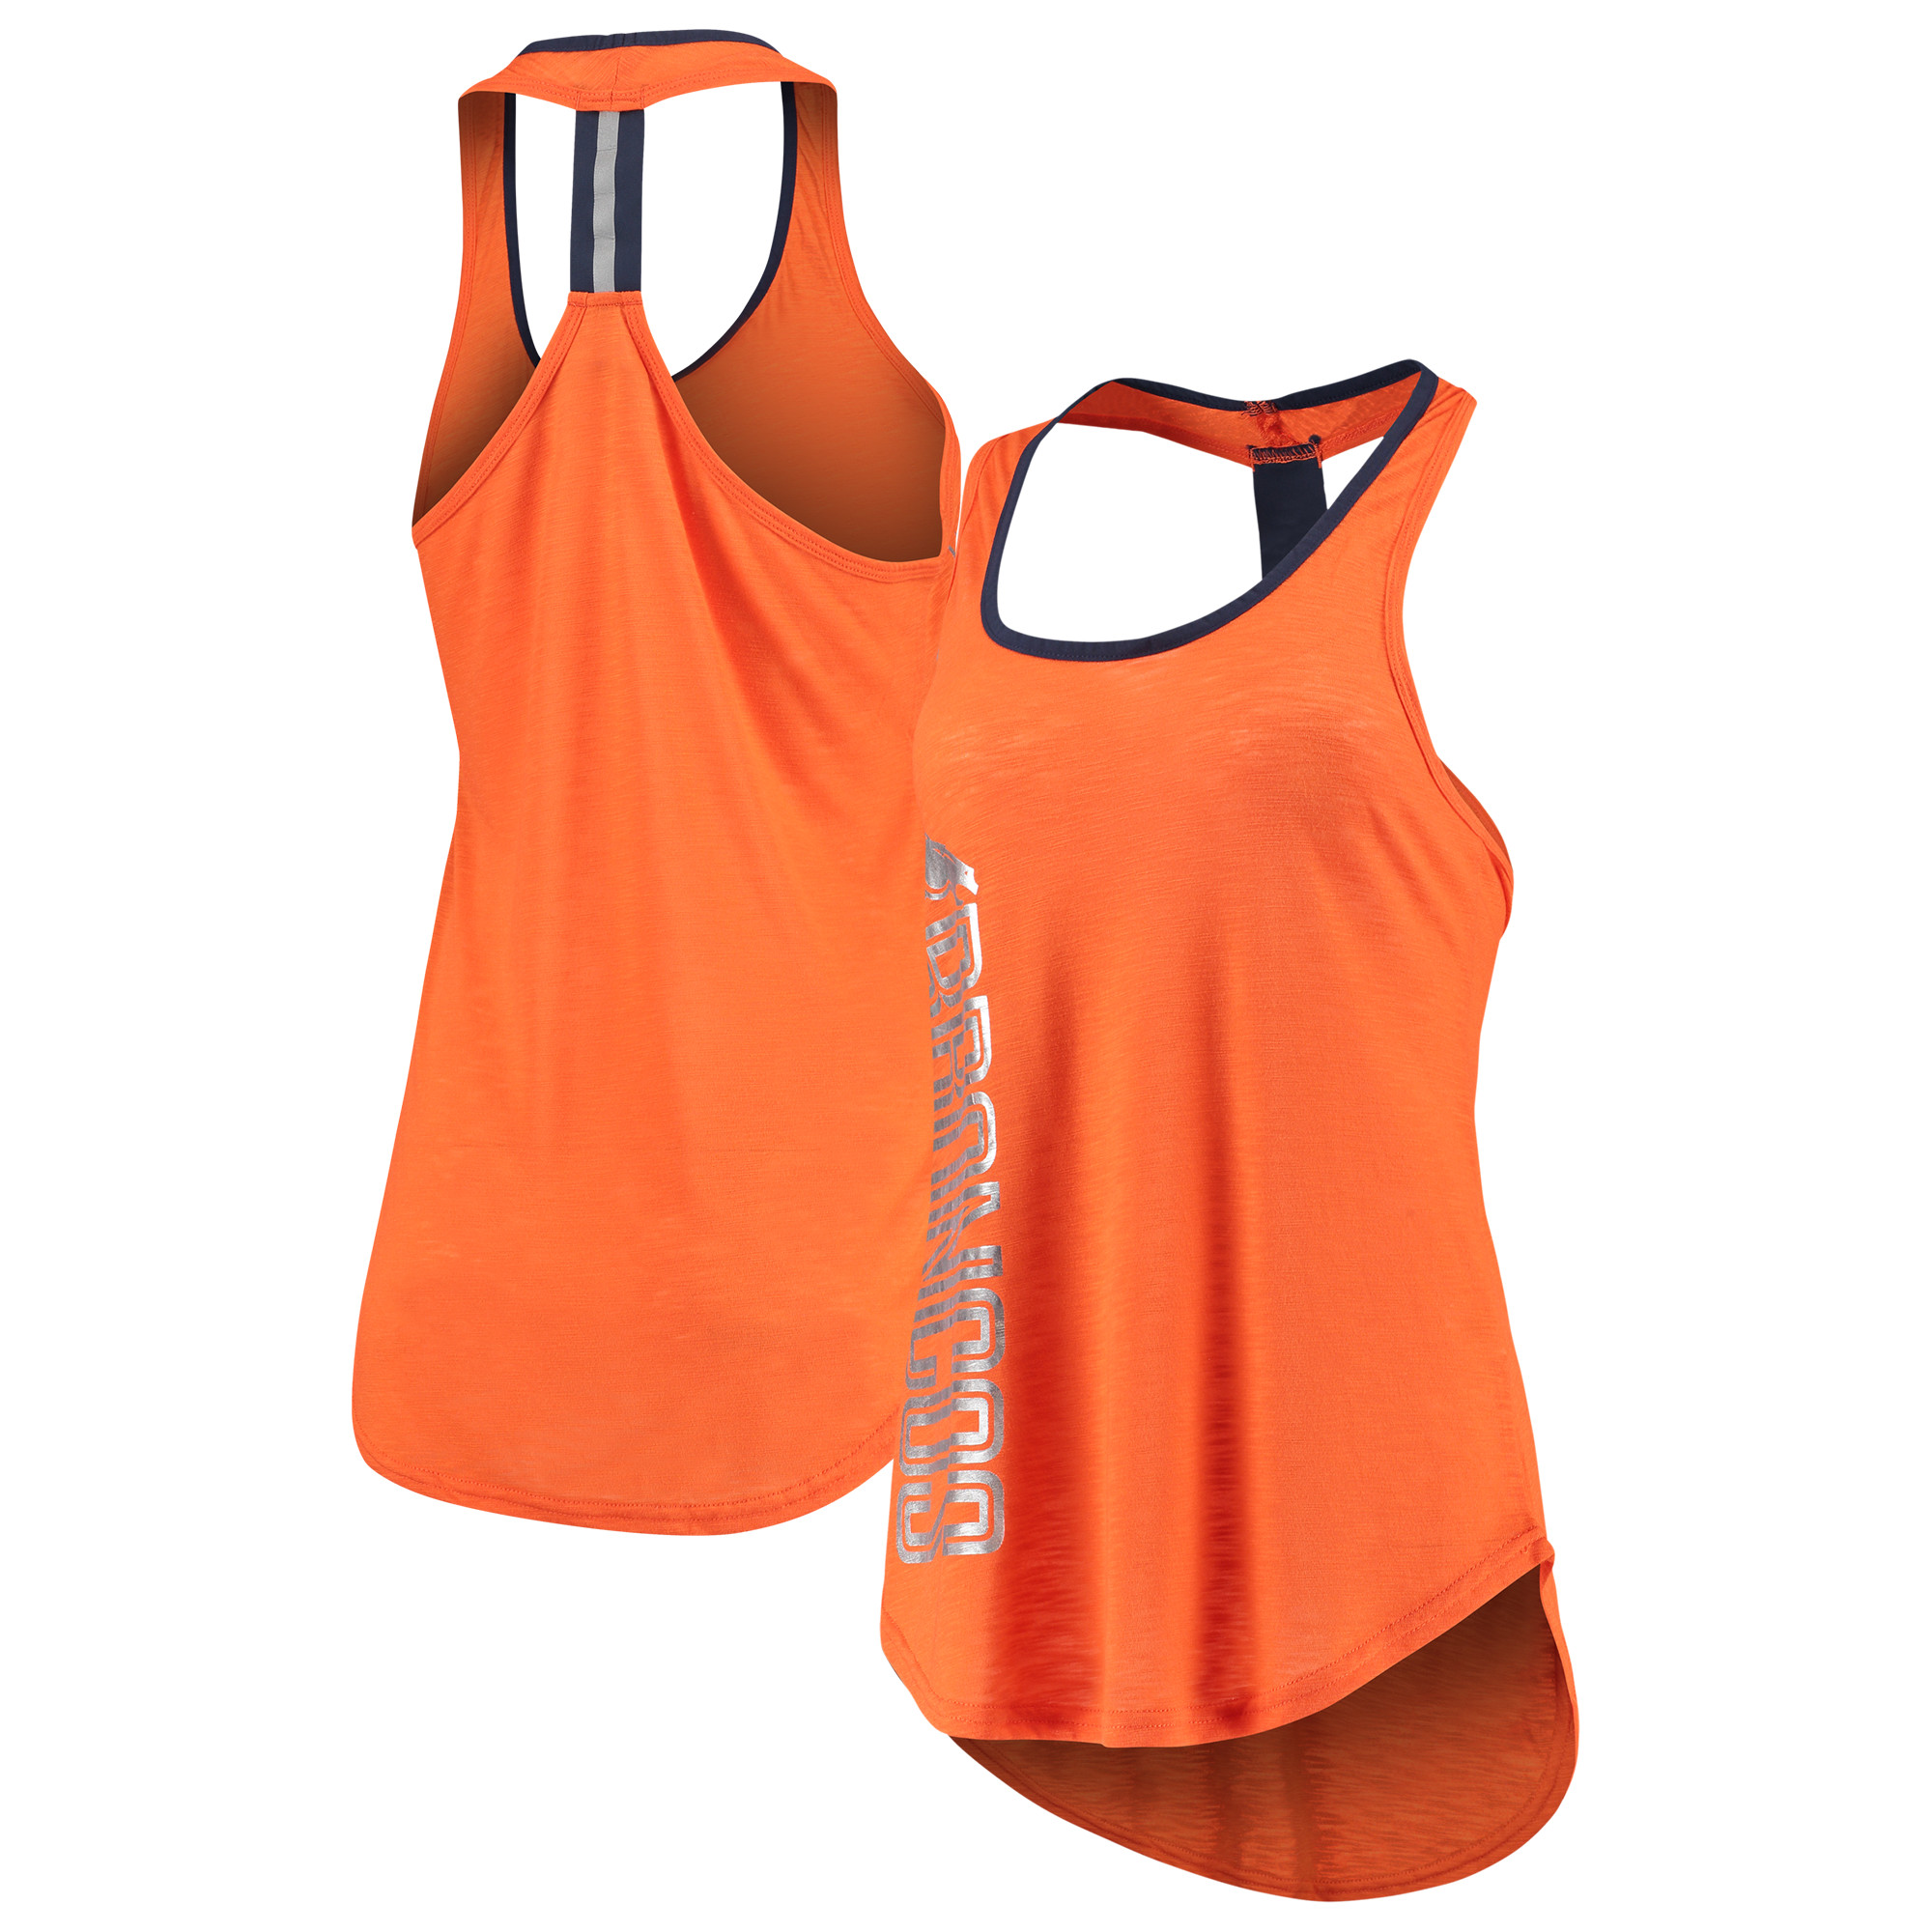 Denver Broncos G-III 4Her by Carl Banks Women's Wildcat Racerback Tank Top - Orange